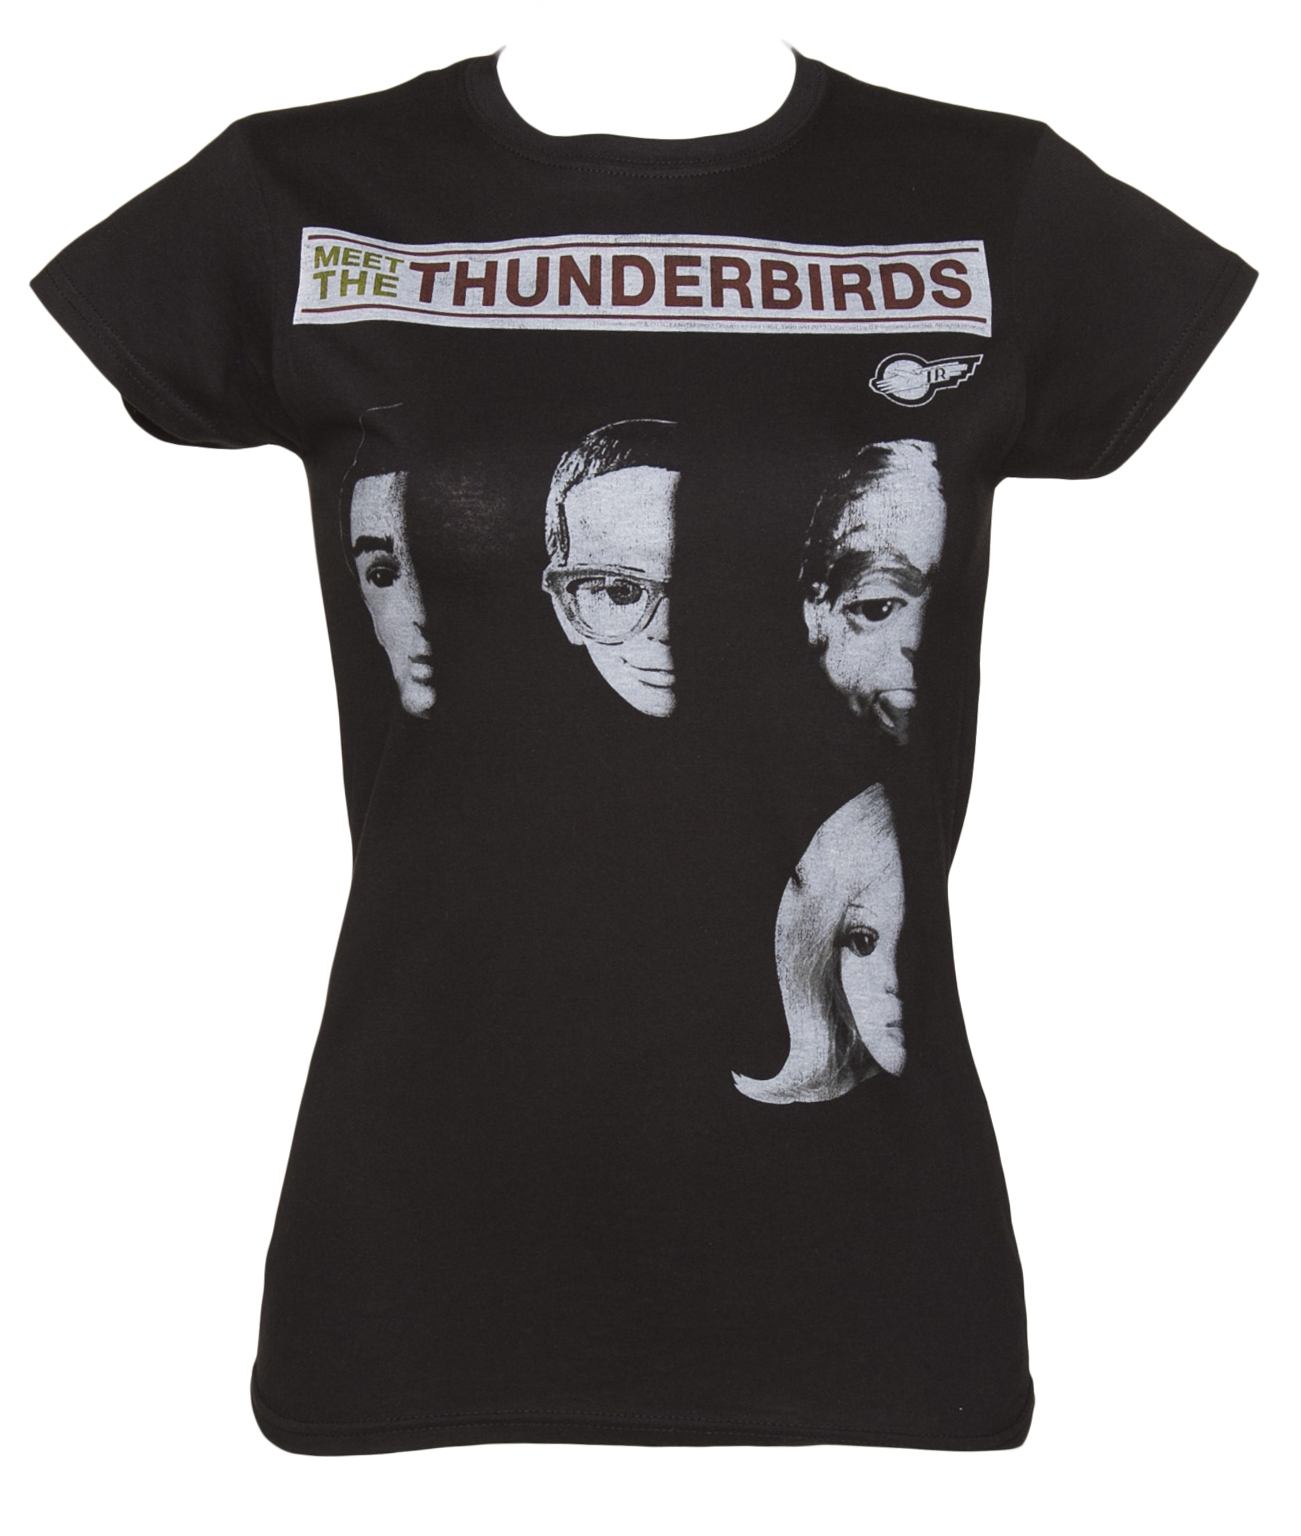 Ladies Meet The Thunderbirds T-Shirt